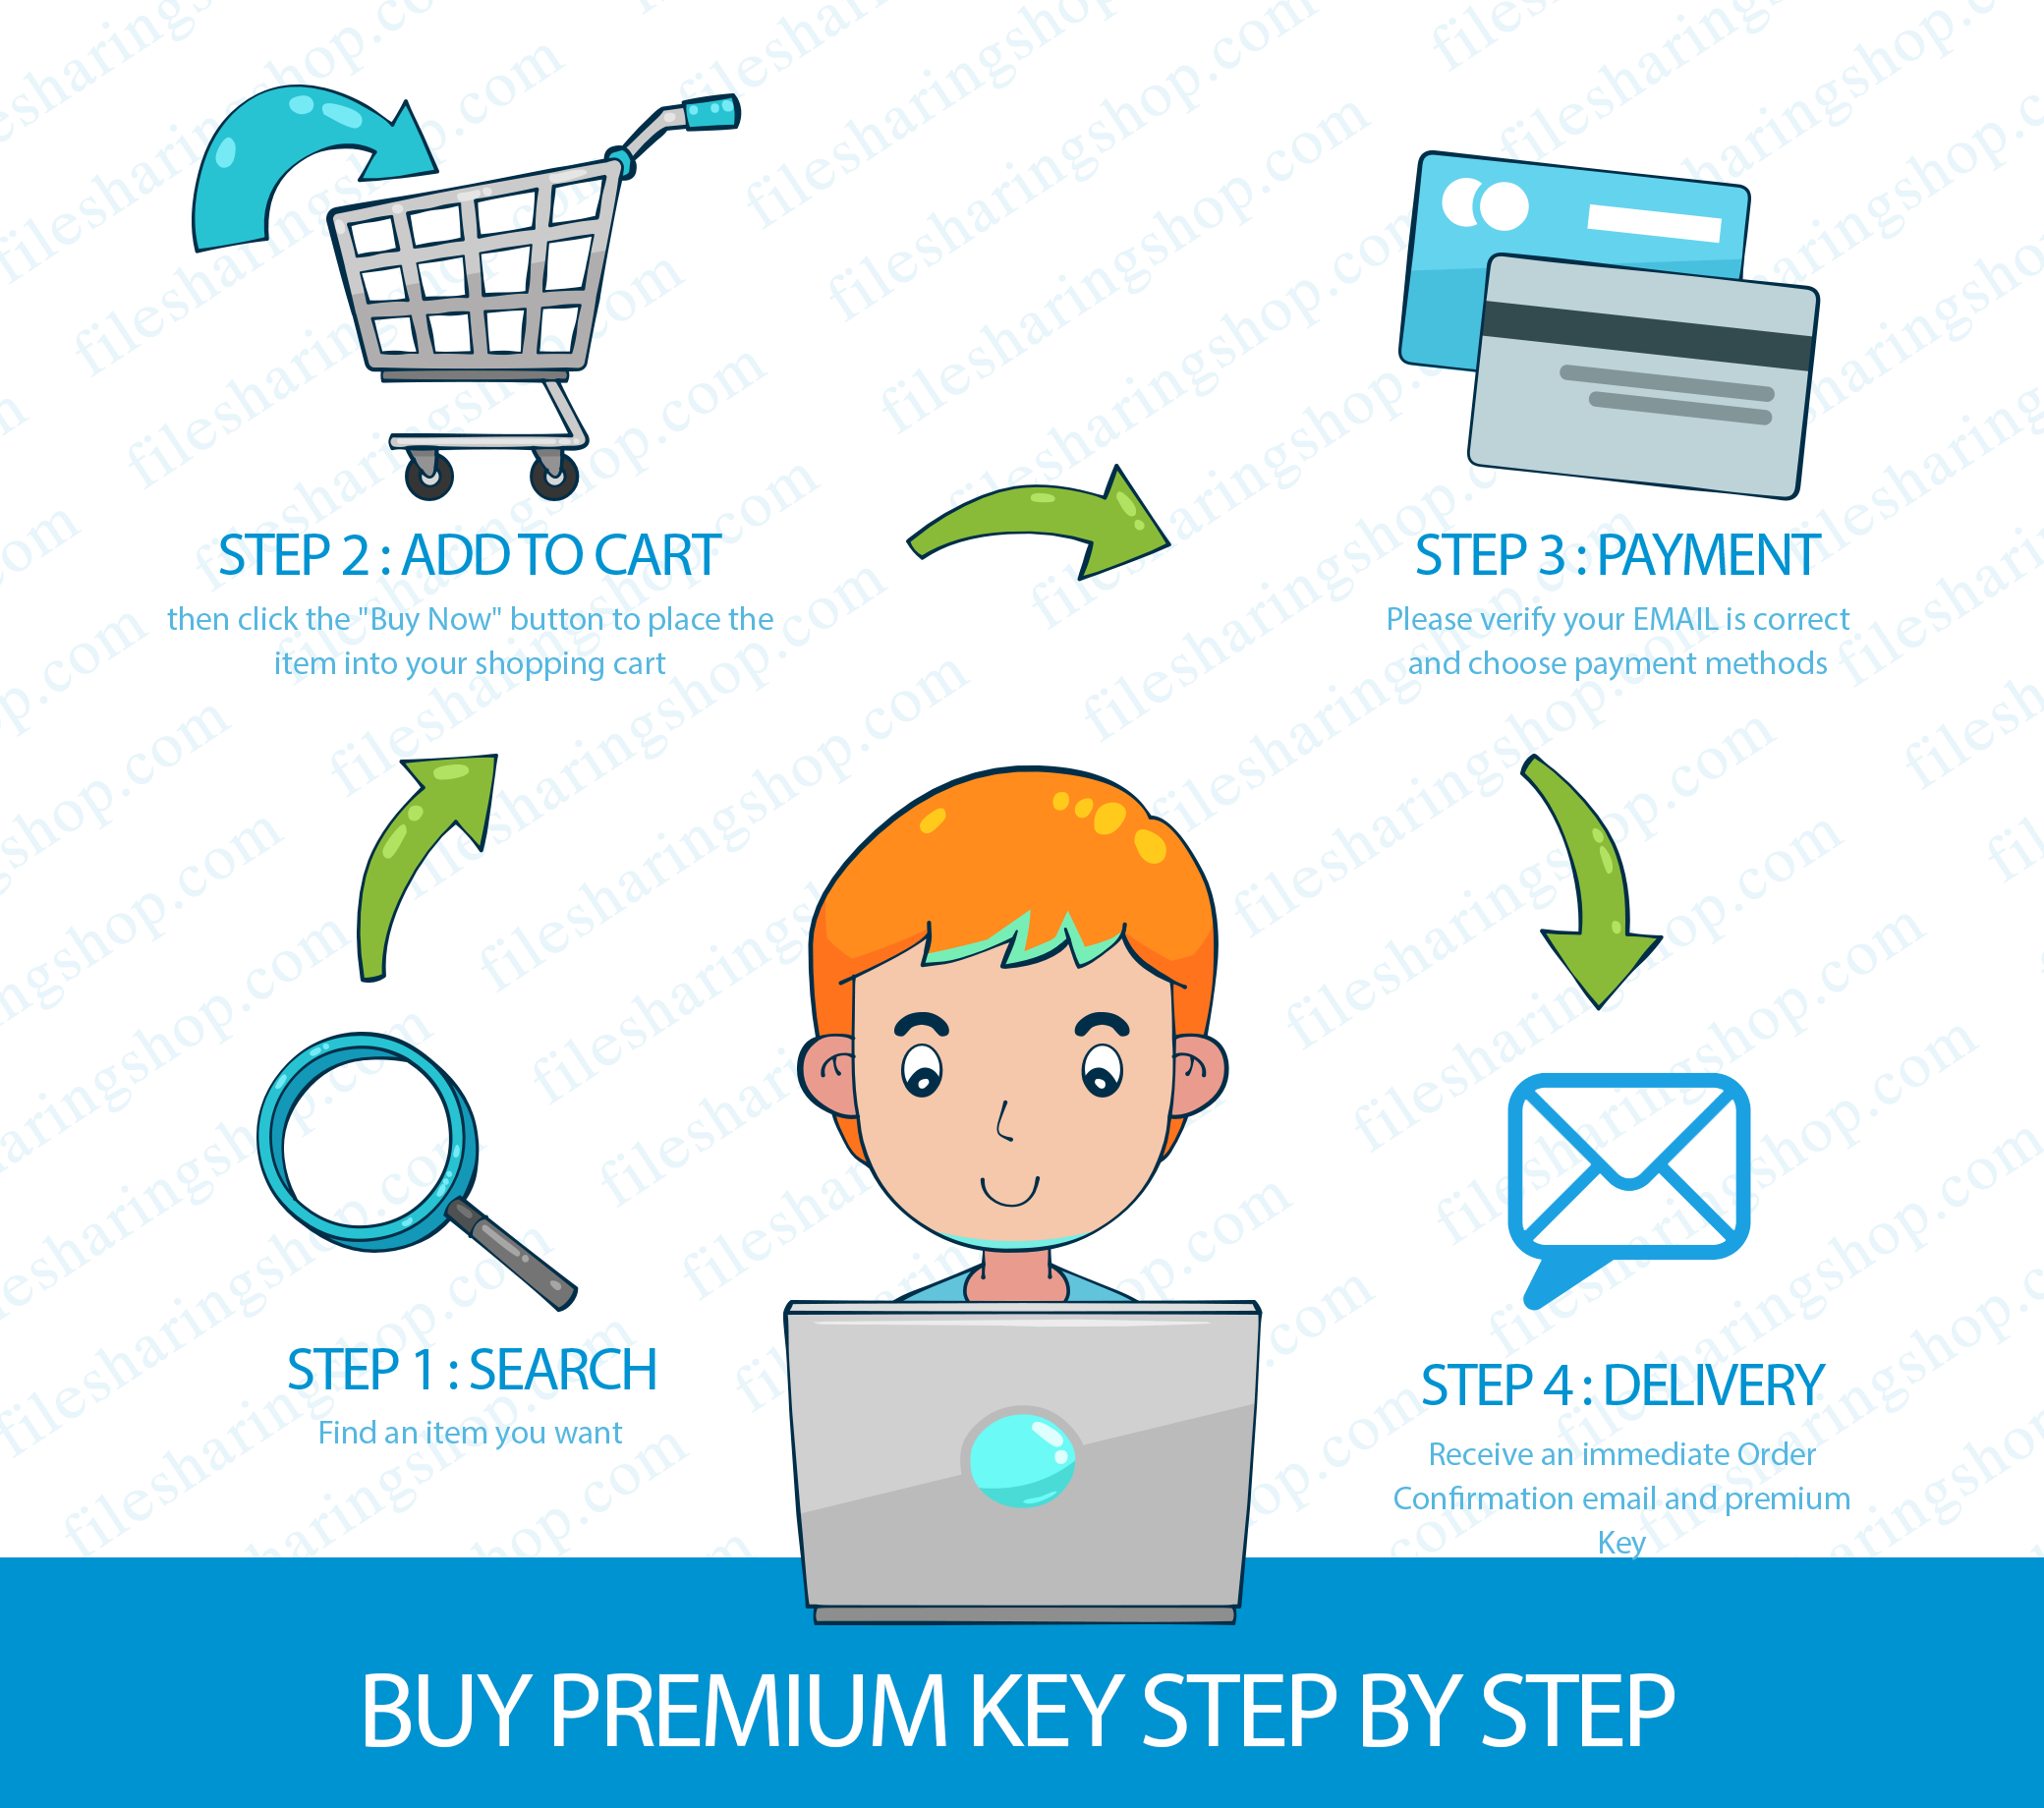 HOW TO BUY TAKEFILE PREMIUM